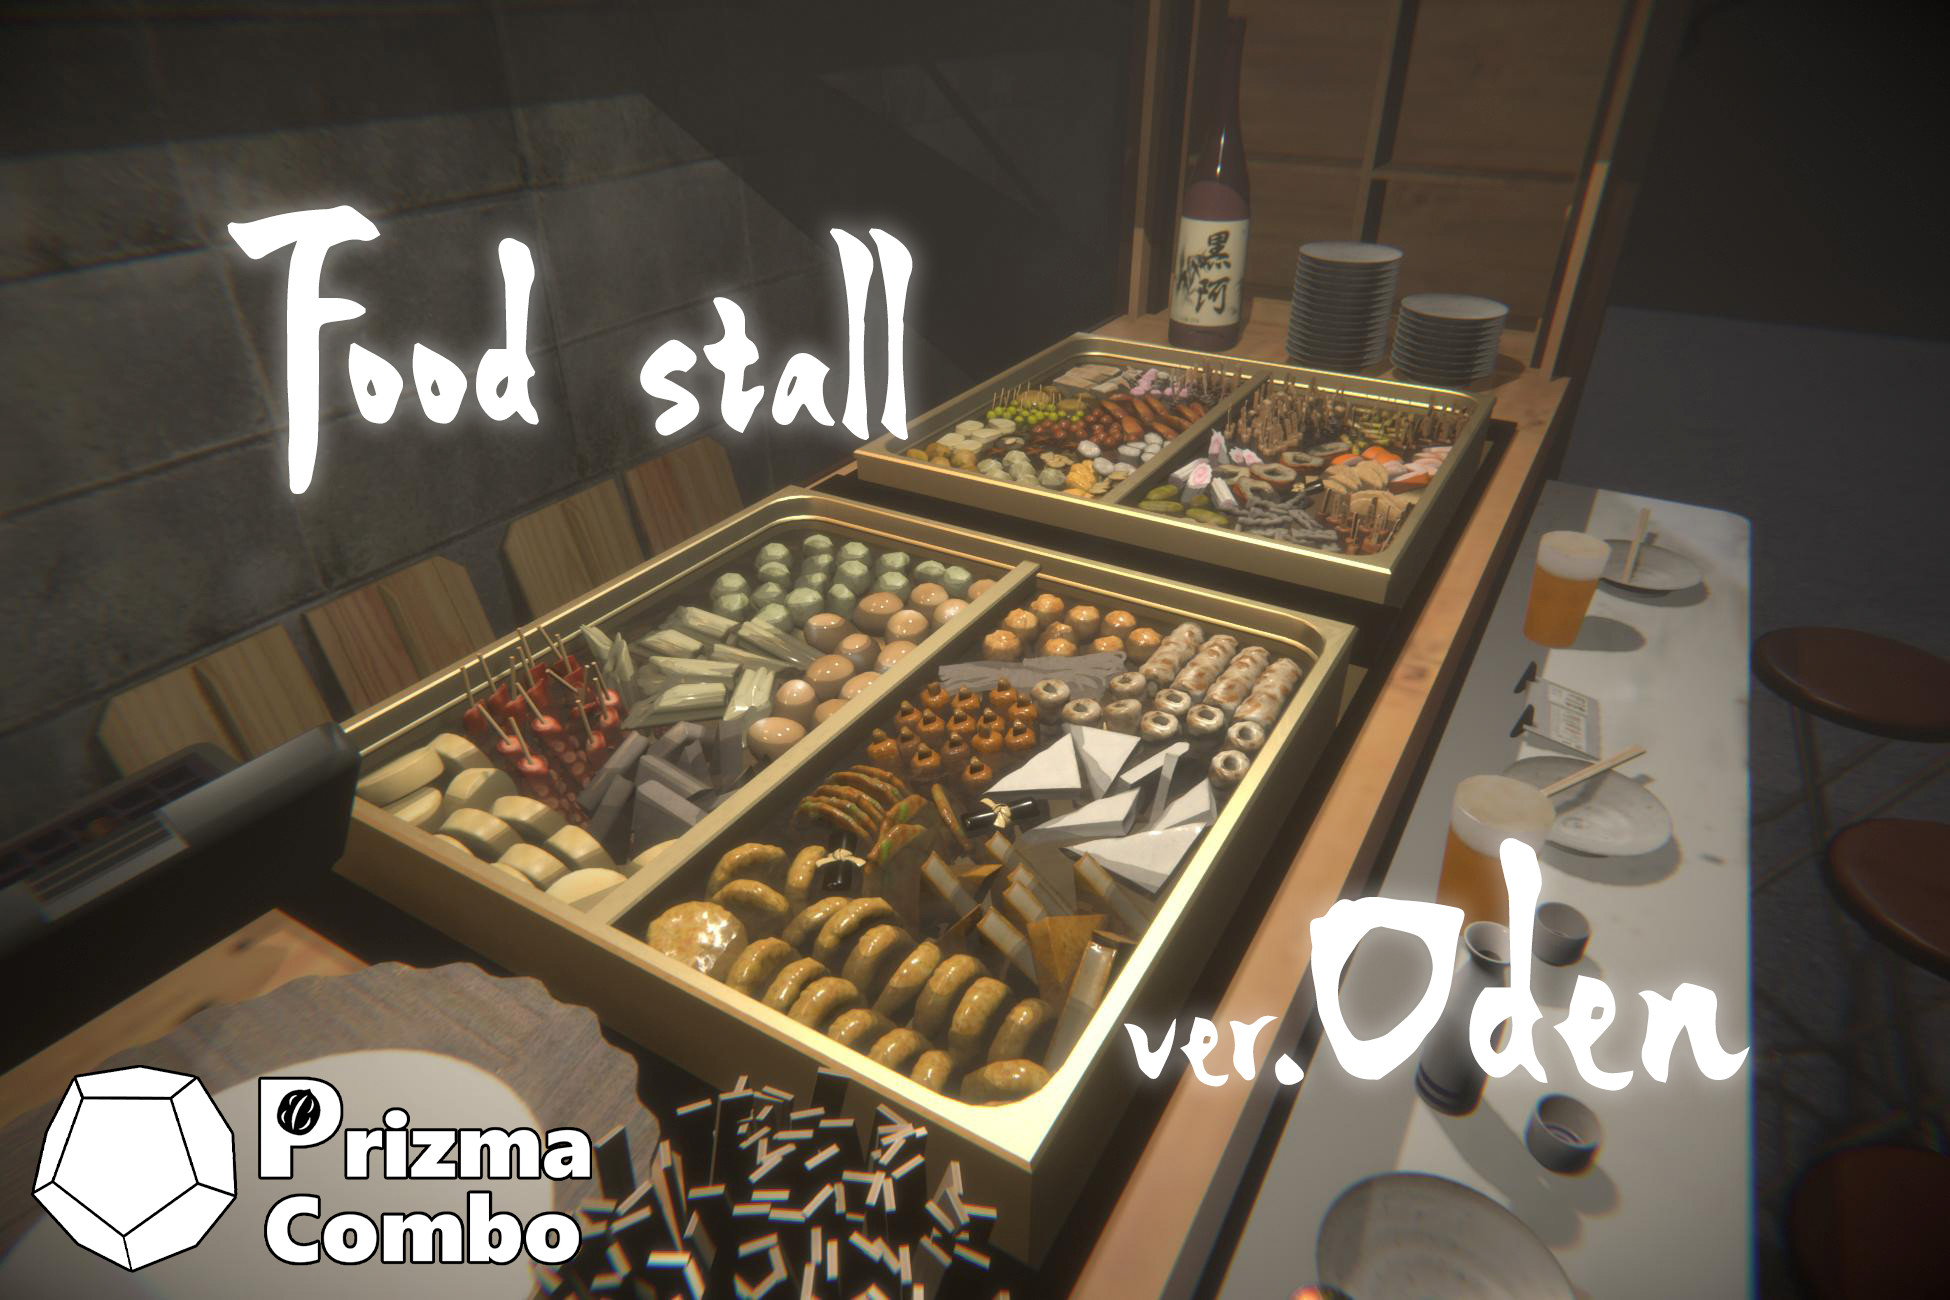 Food stall ver.Oden